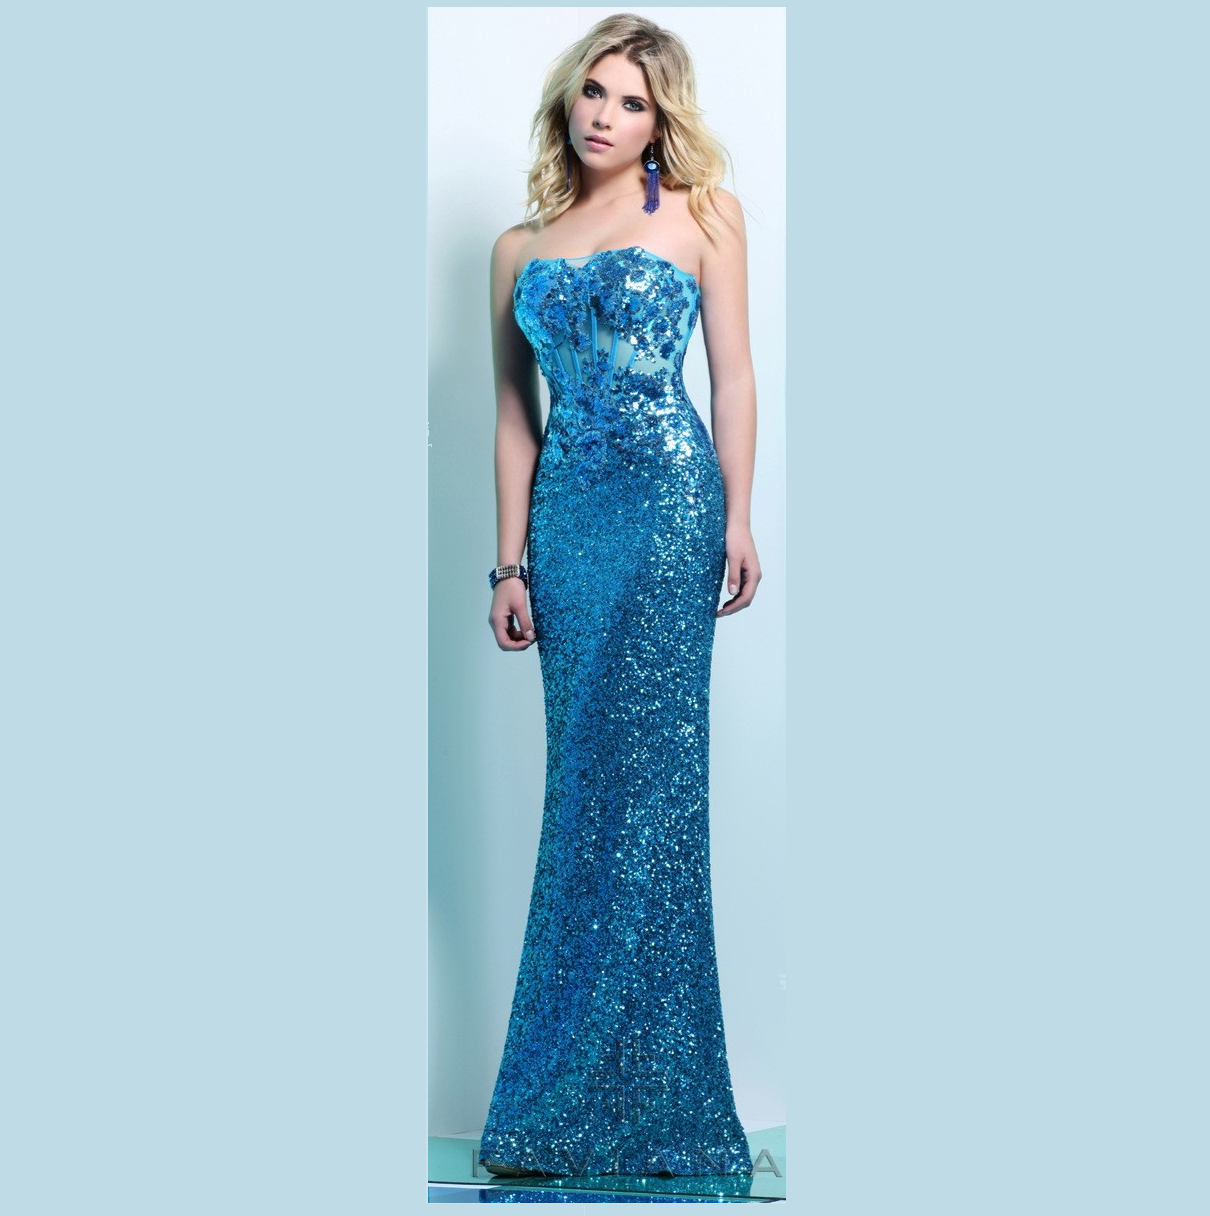 Don\'t Delay, Find Your Prom Gown at Volle\'s Today! - Lake Zurich Courier